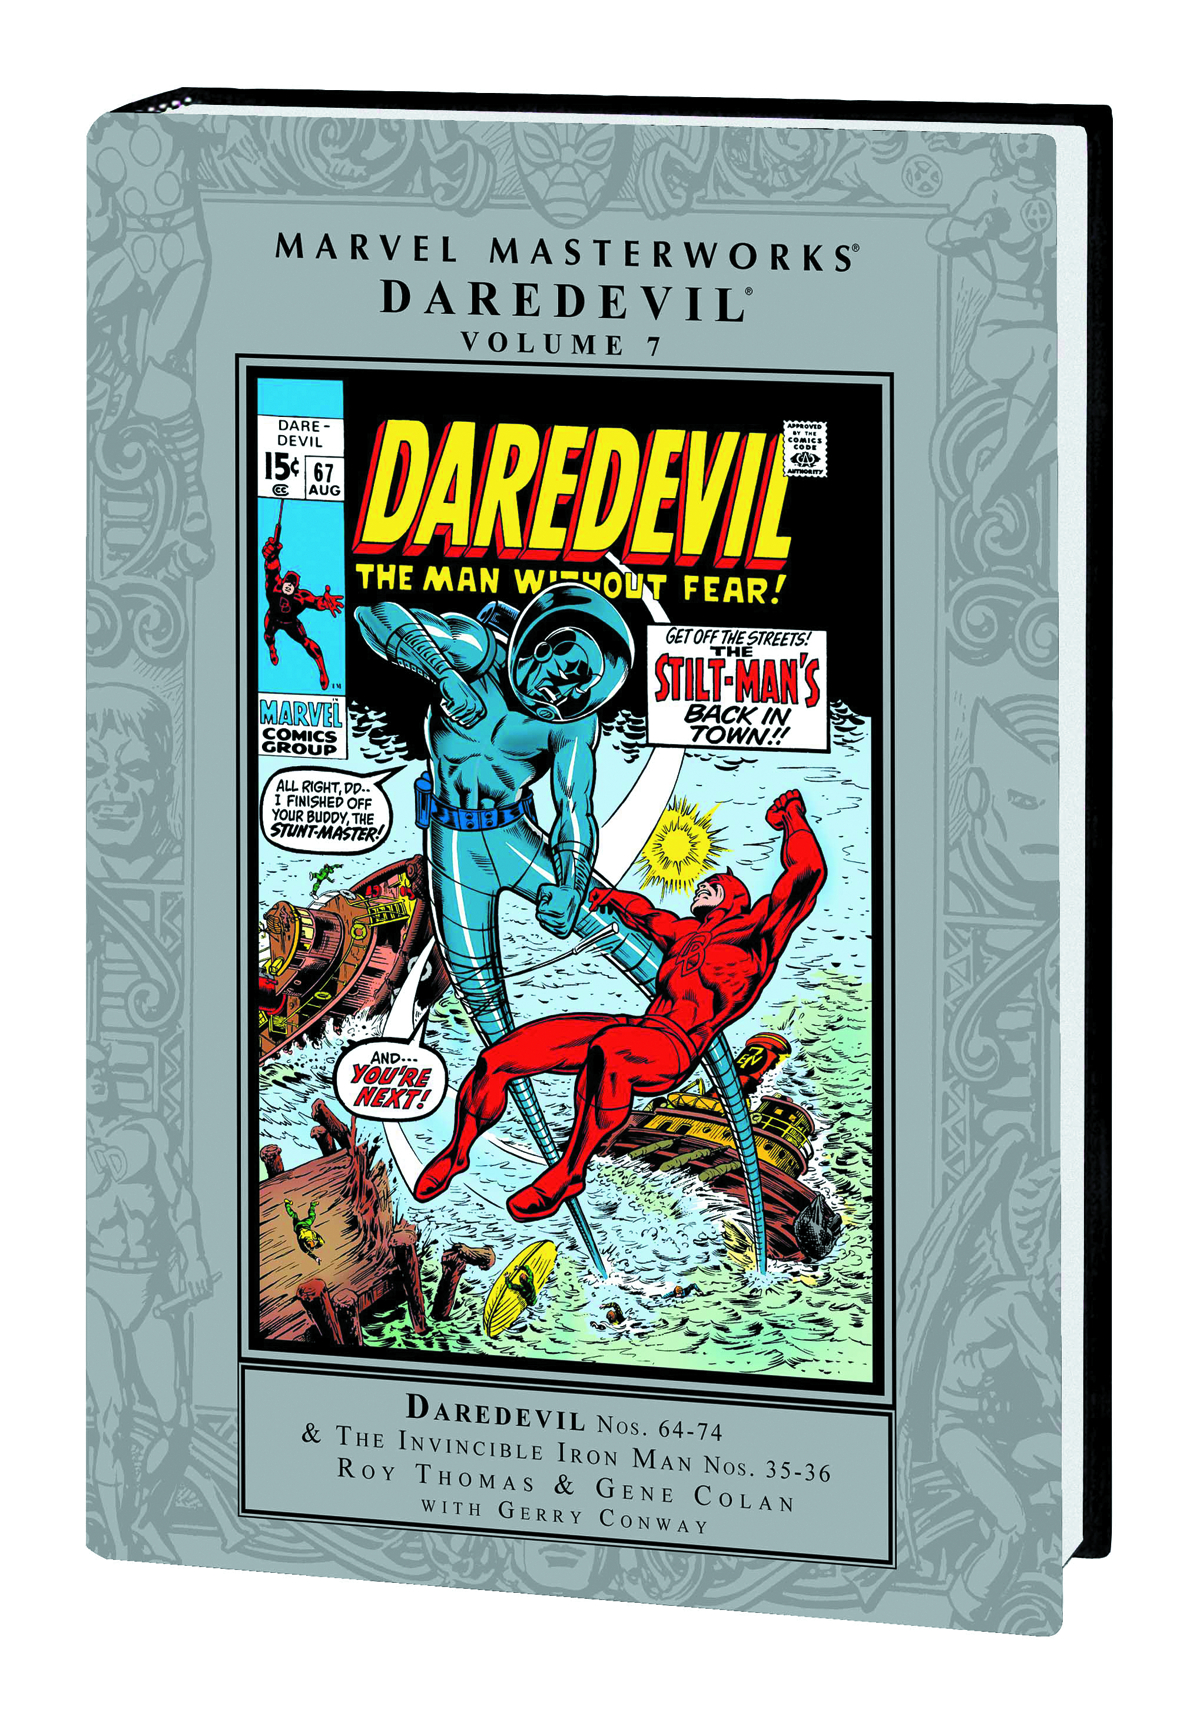 MMW DAREDEVIL HC VOL 07